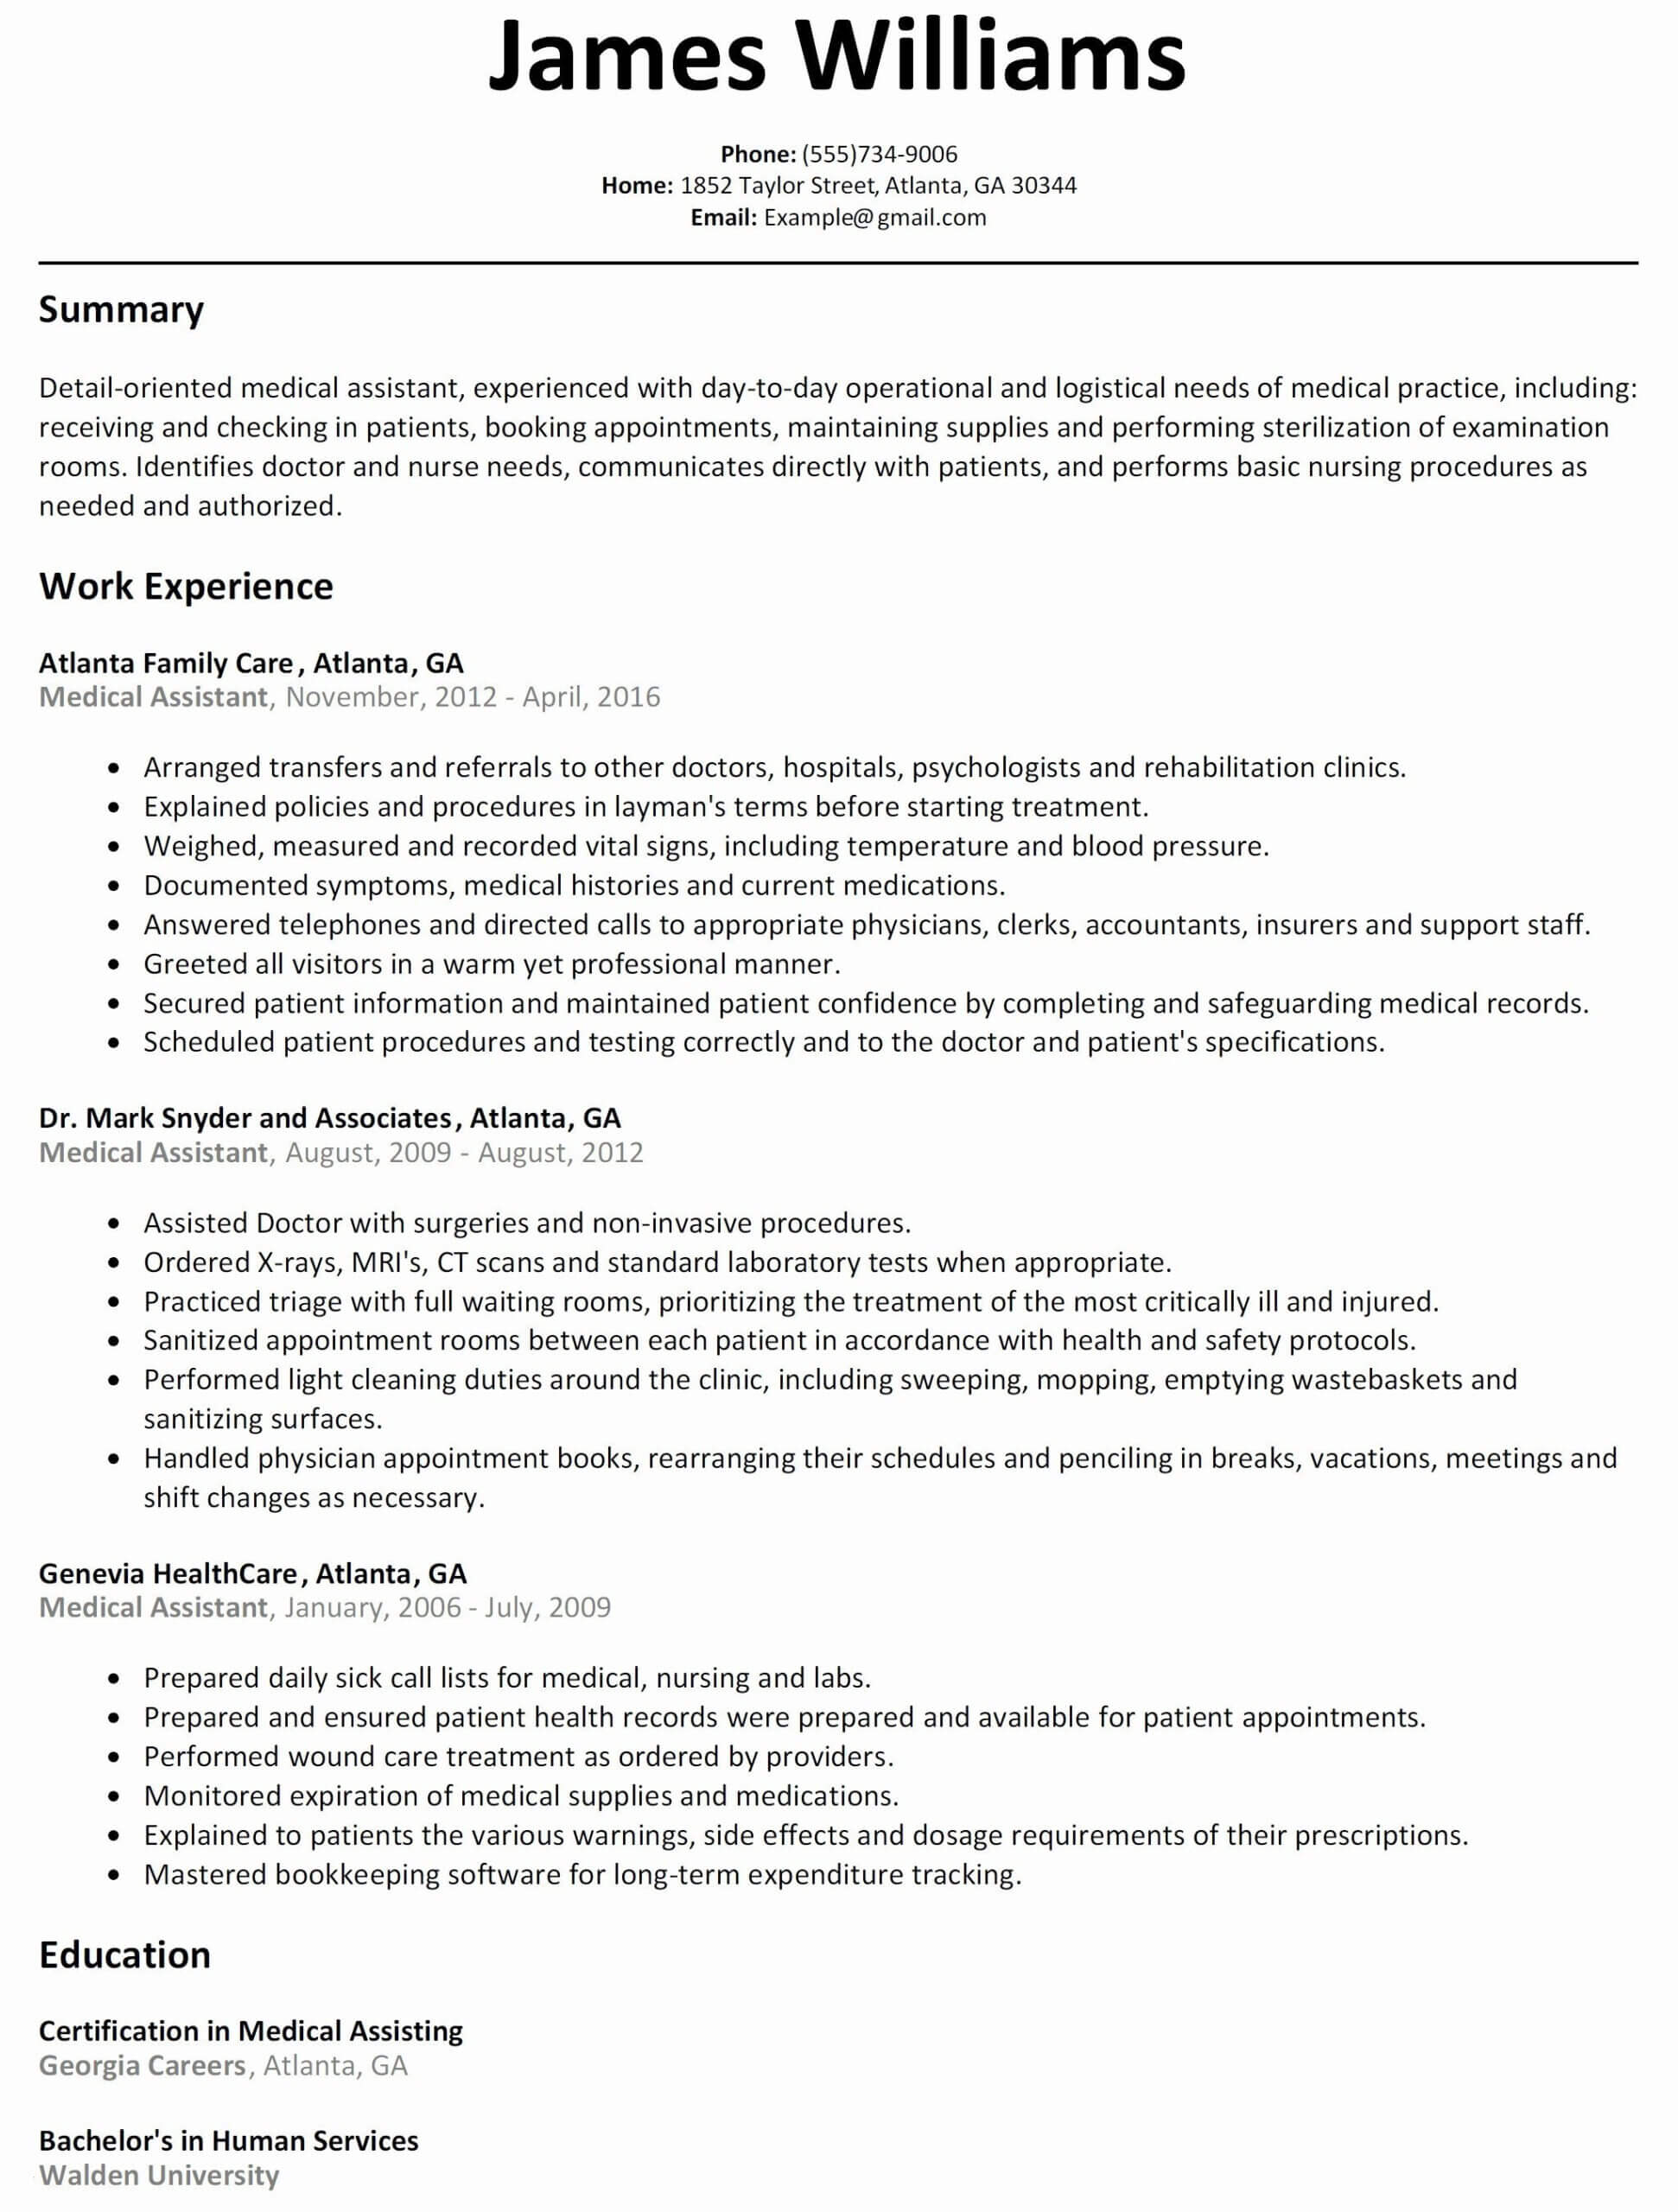 Interesting Resume | Nanokino Pertaining To Free Blank Resume Templates For Microsoft Word